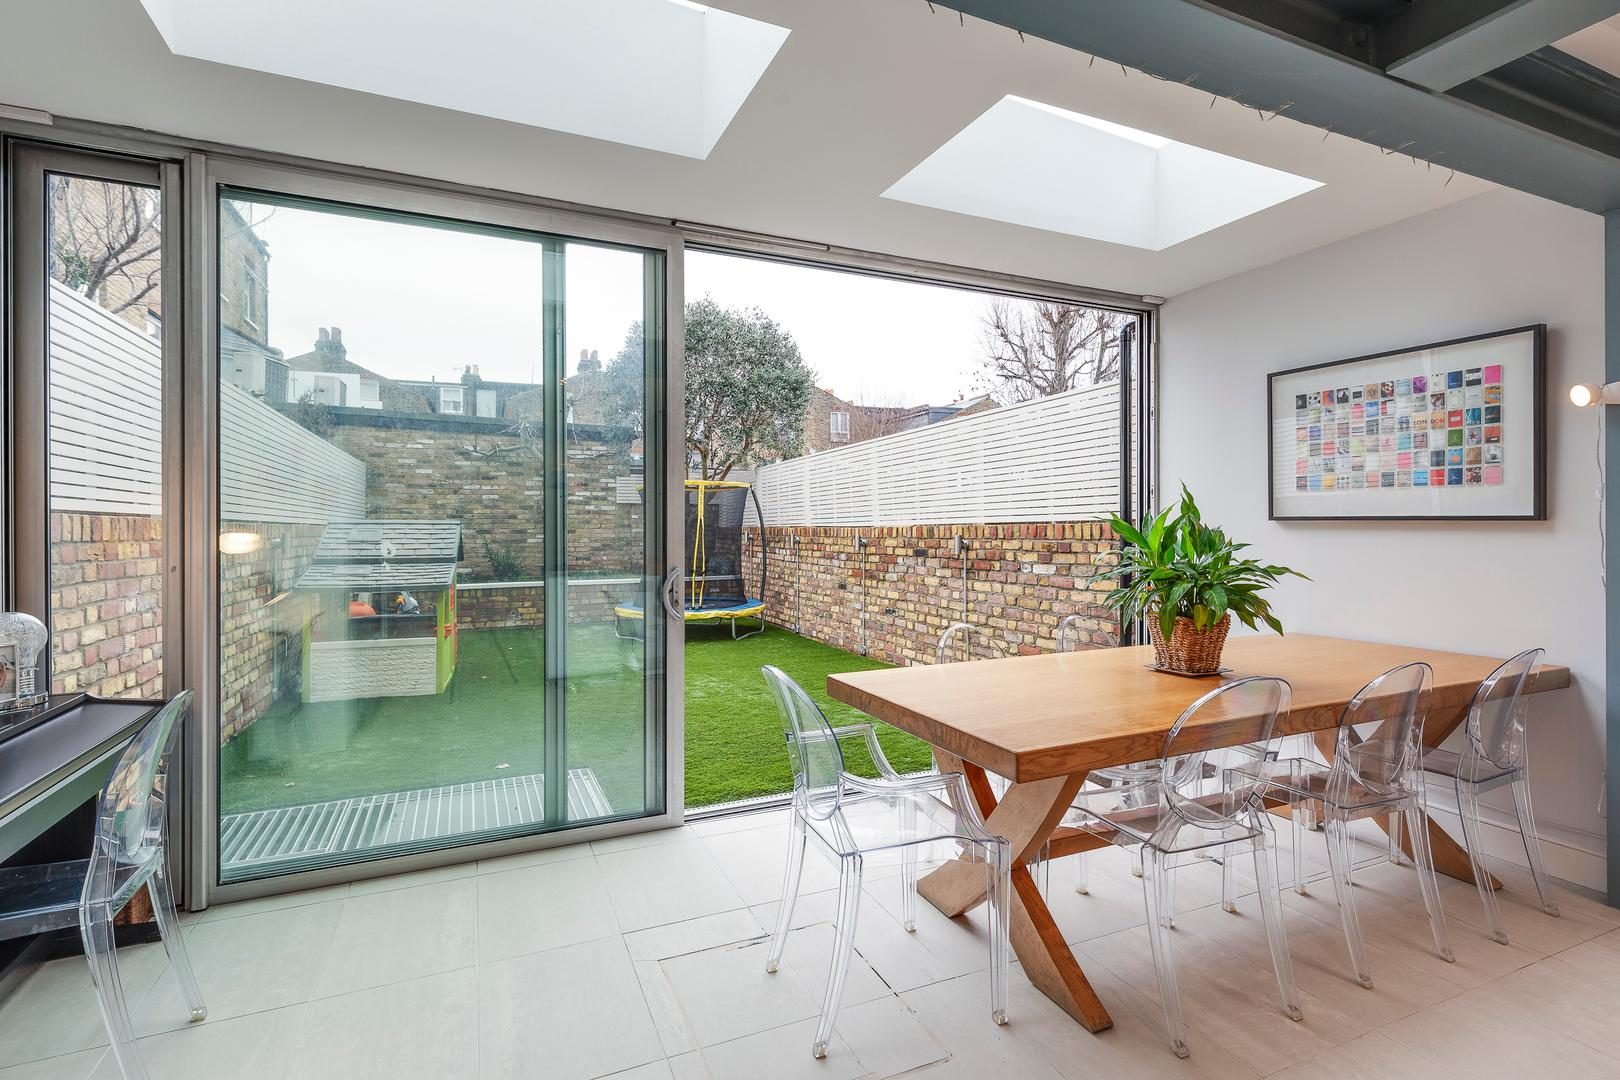 Property Image 2 - Chic Clapham House, 6 bedrooms with Private Garden